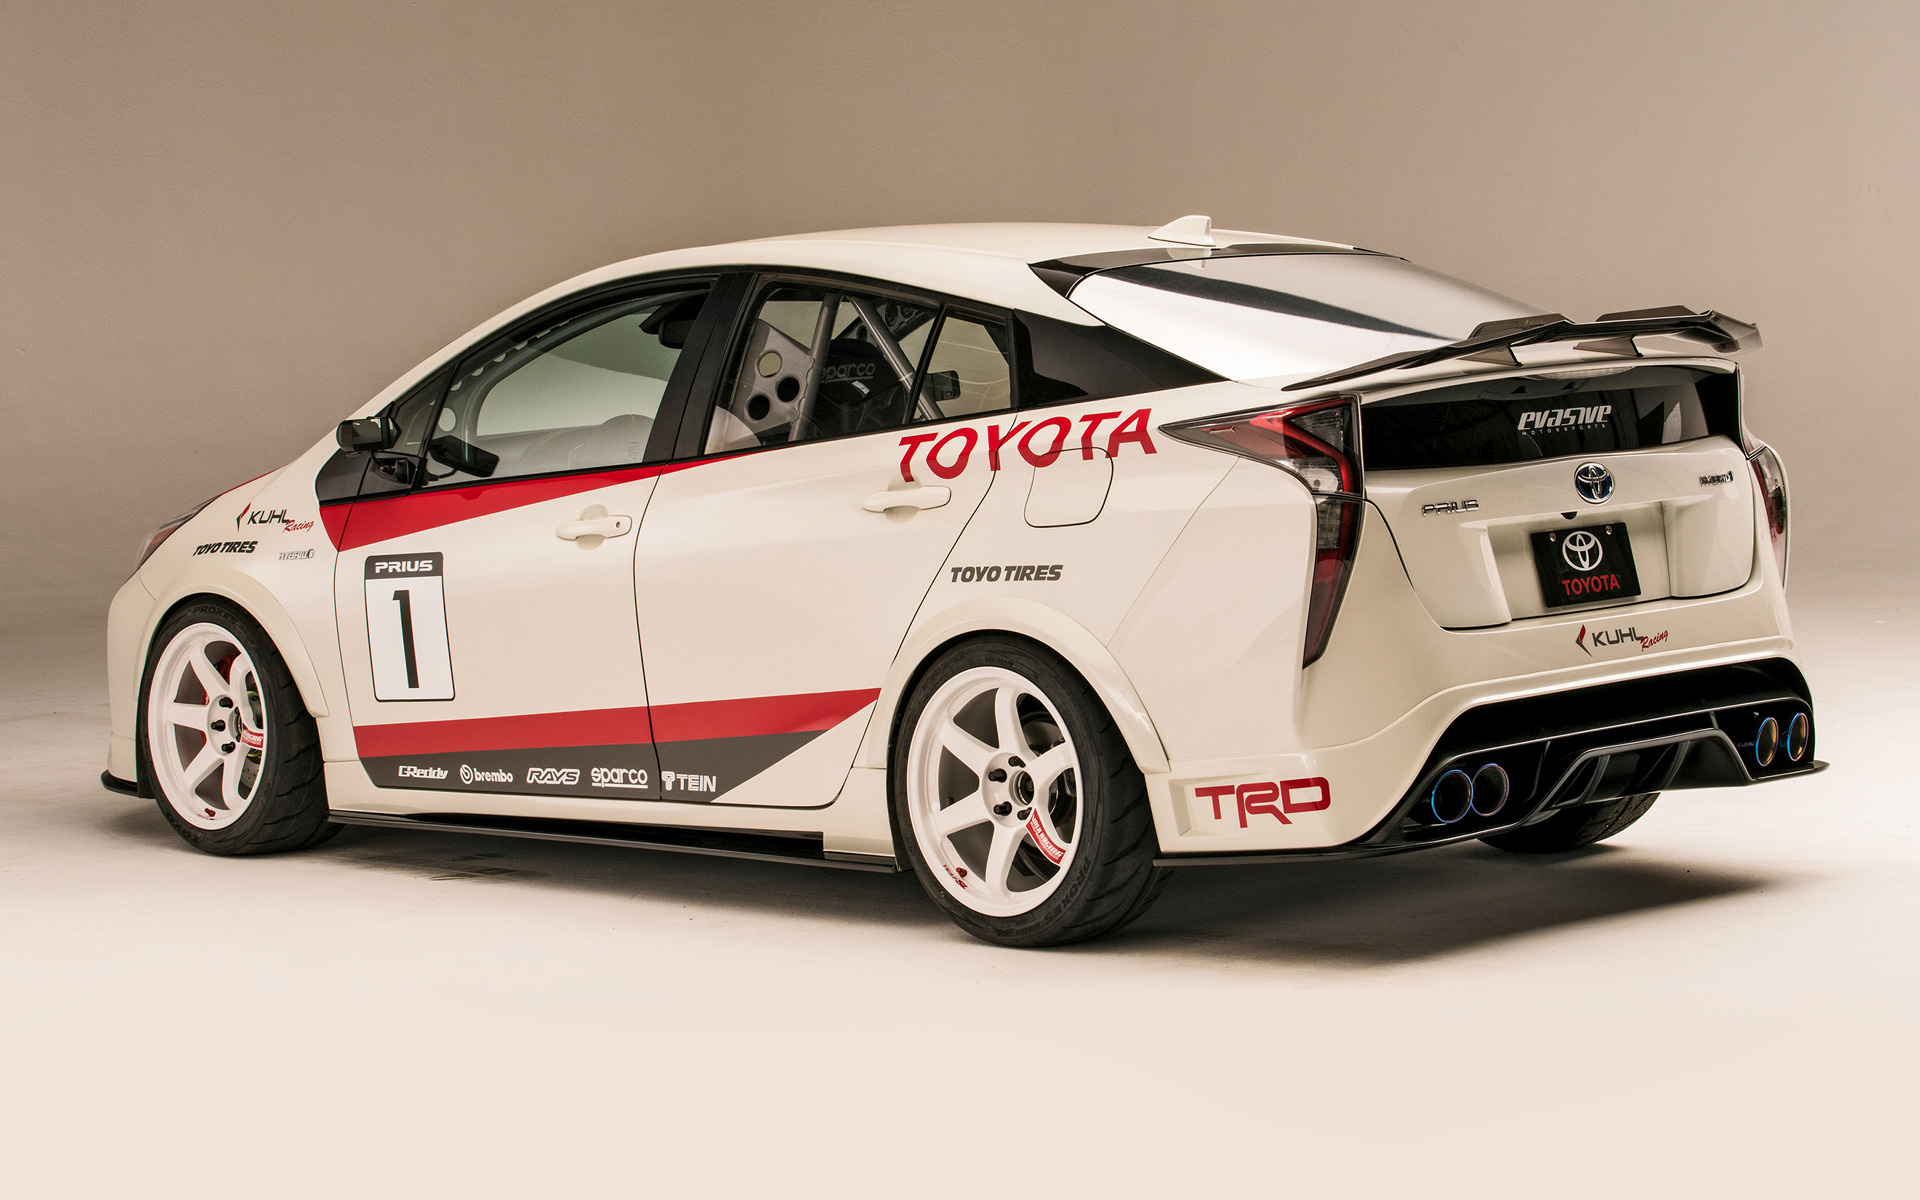 Toyota Prius G Extreme (2016) Wallpapers and HD Images ...